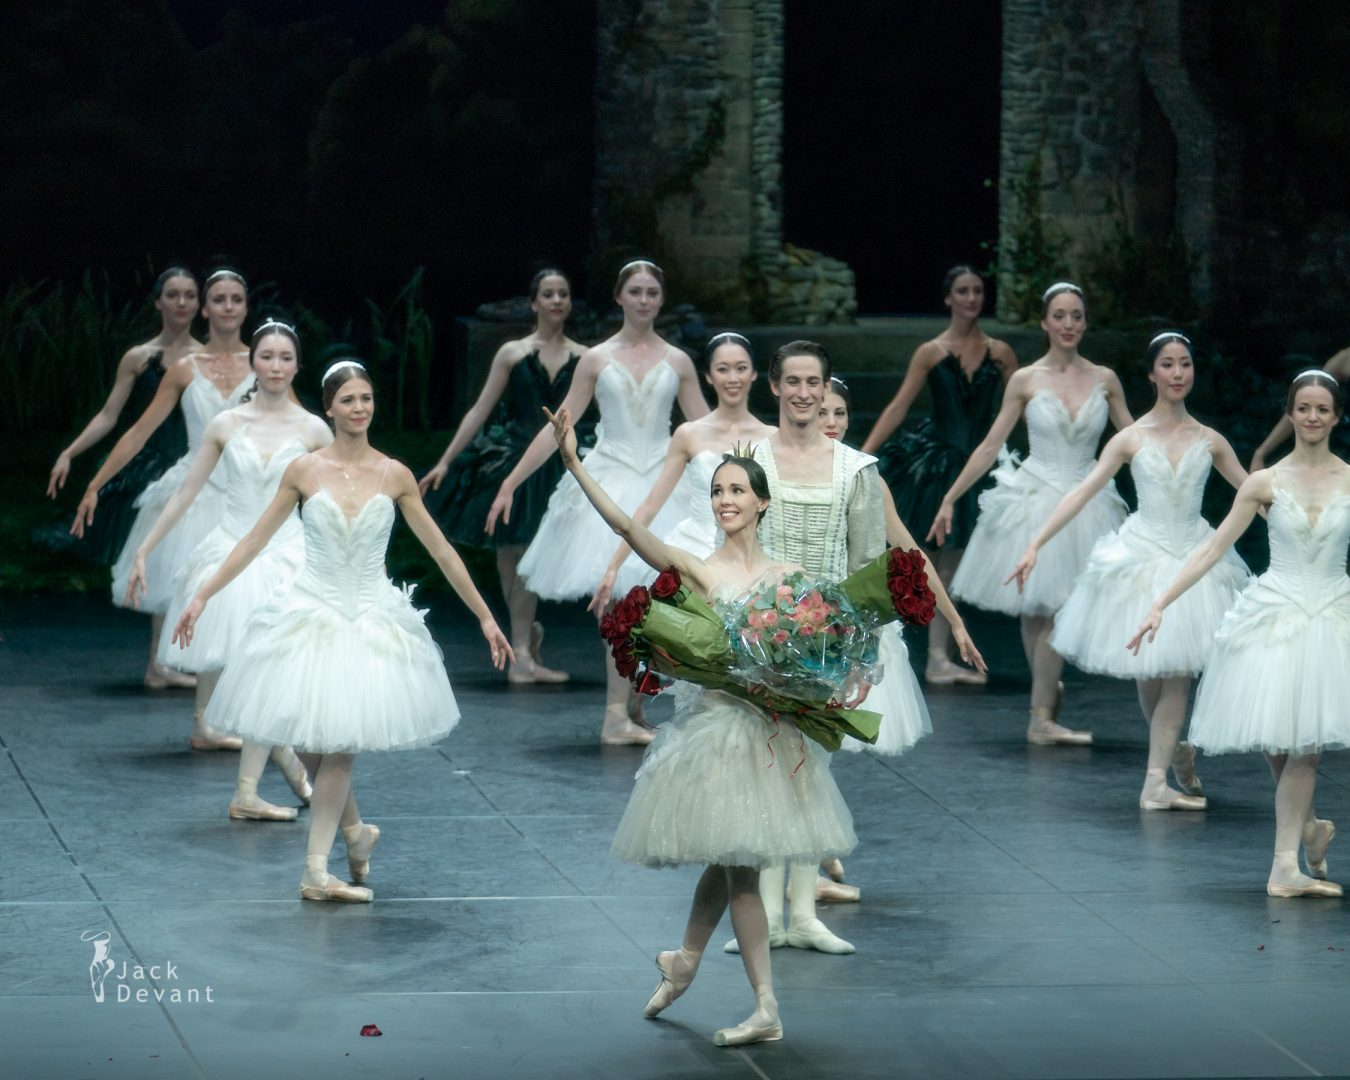 Viktorina Kapitonova last dance as Odette / Odile with Ballett Zürich last bow